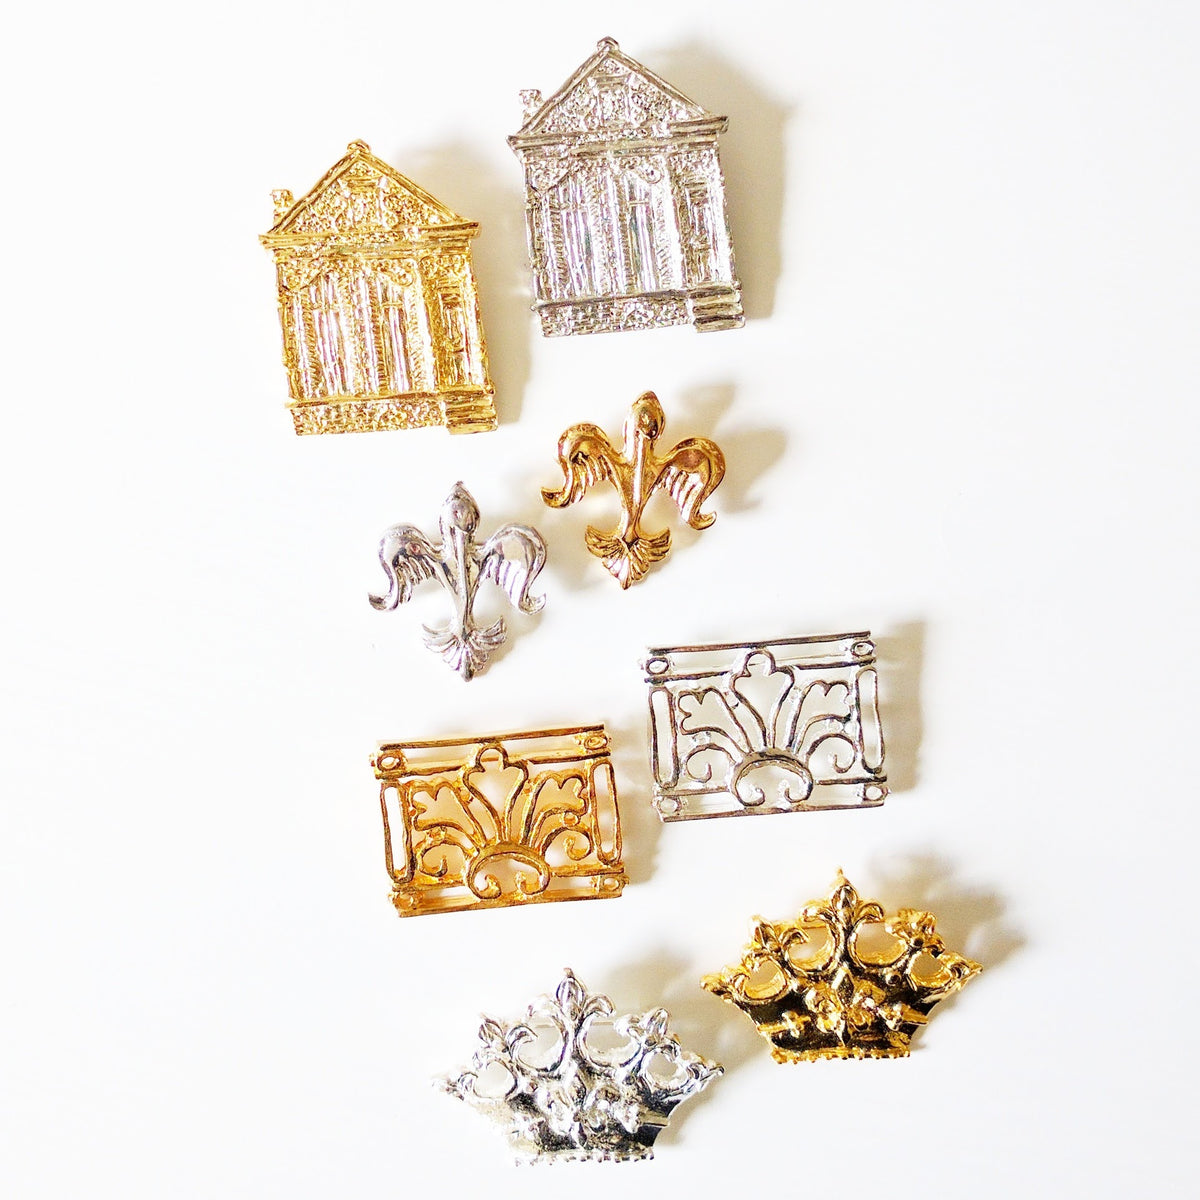 Pins / Brooches